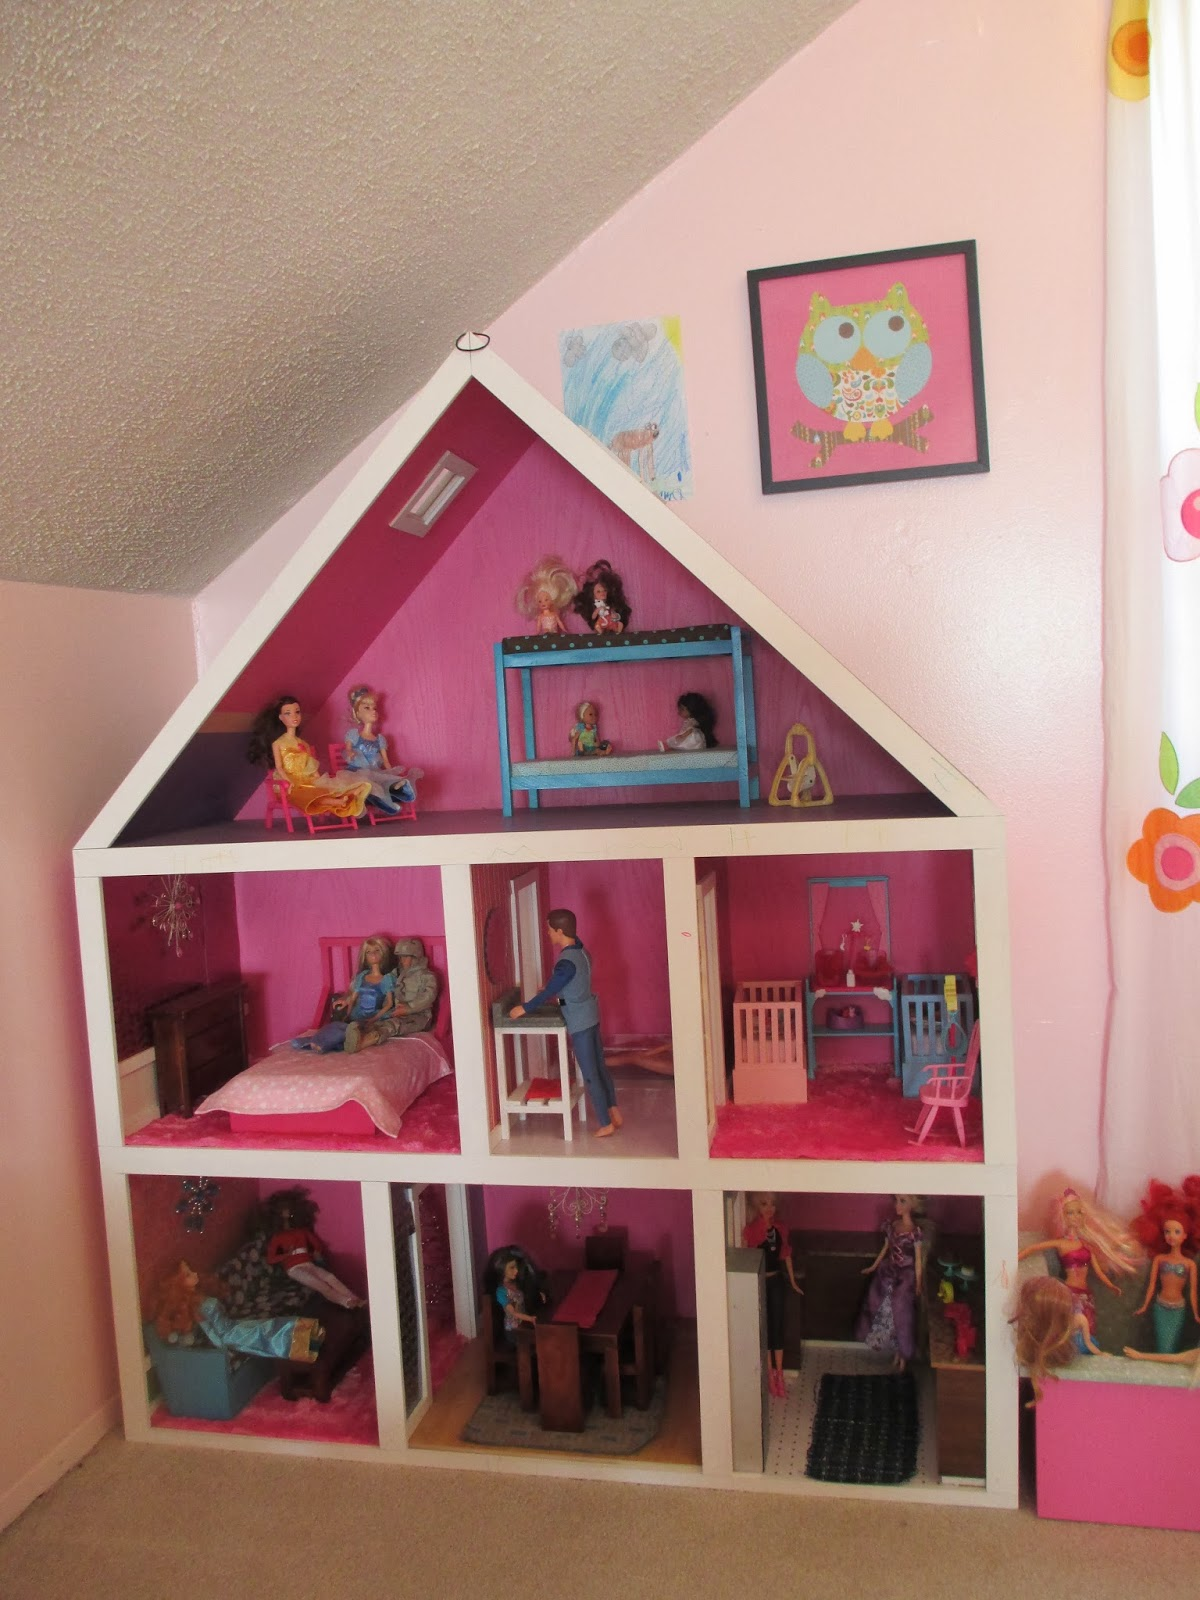 Make Your Own Barbie Furniture Property Extraordinary Kruse's Workshop Building For Barbie On A Budget Inspiration Design